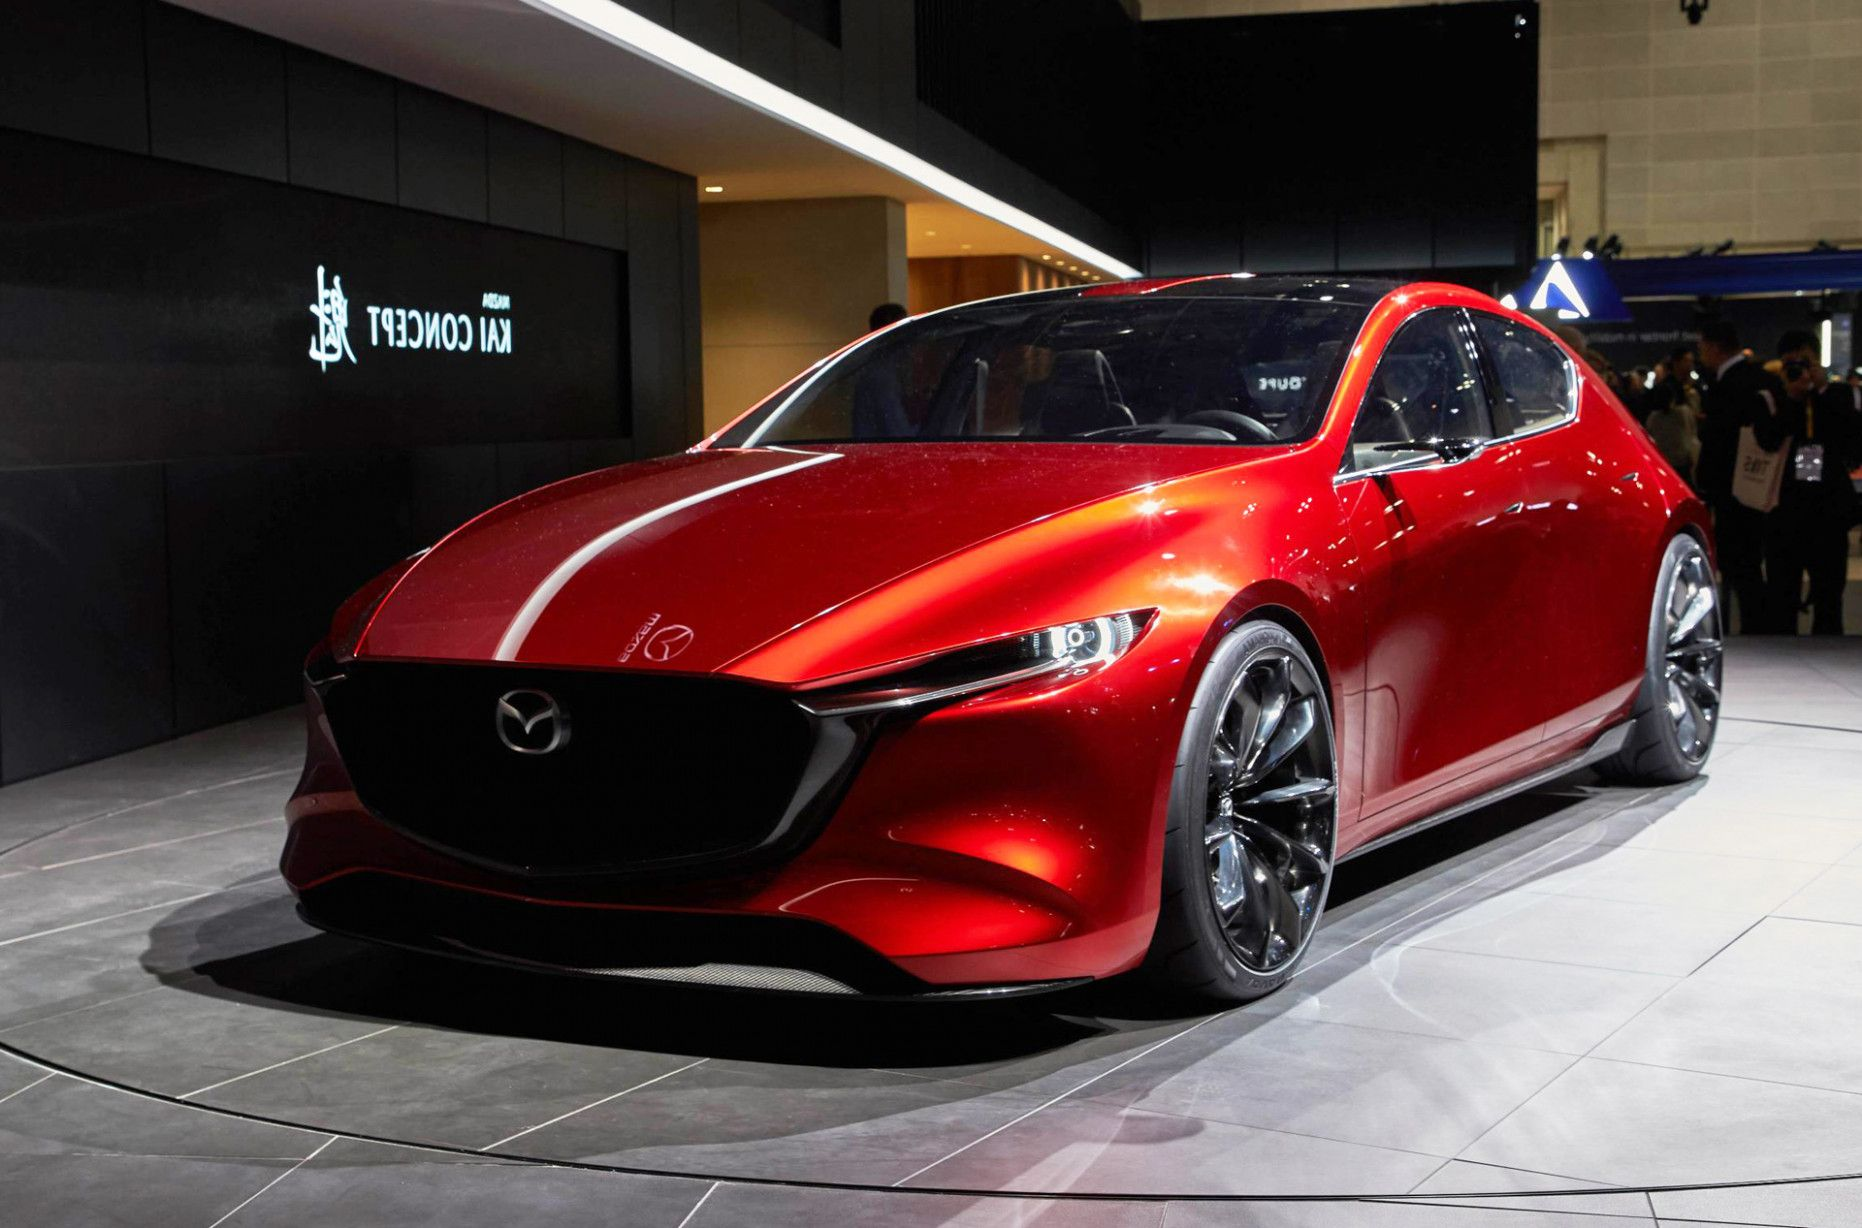 Ten Moments To Remember From Mazda 3 Kai 2020 Mazda Mazda 3 Concept Cars